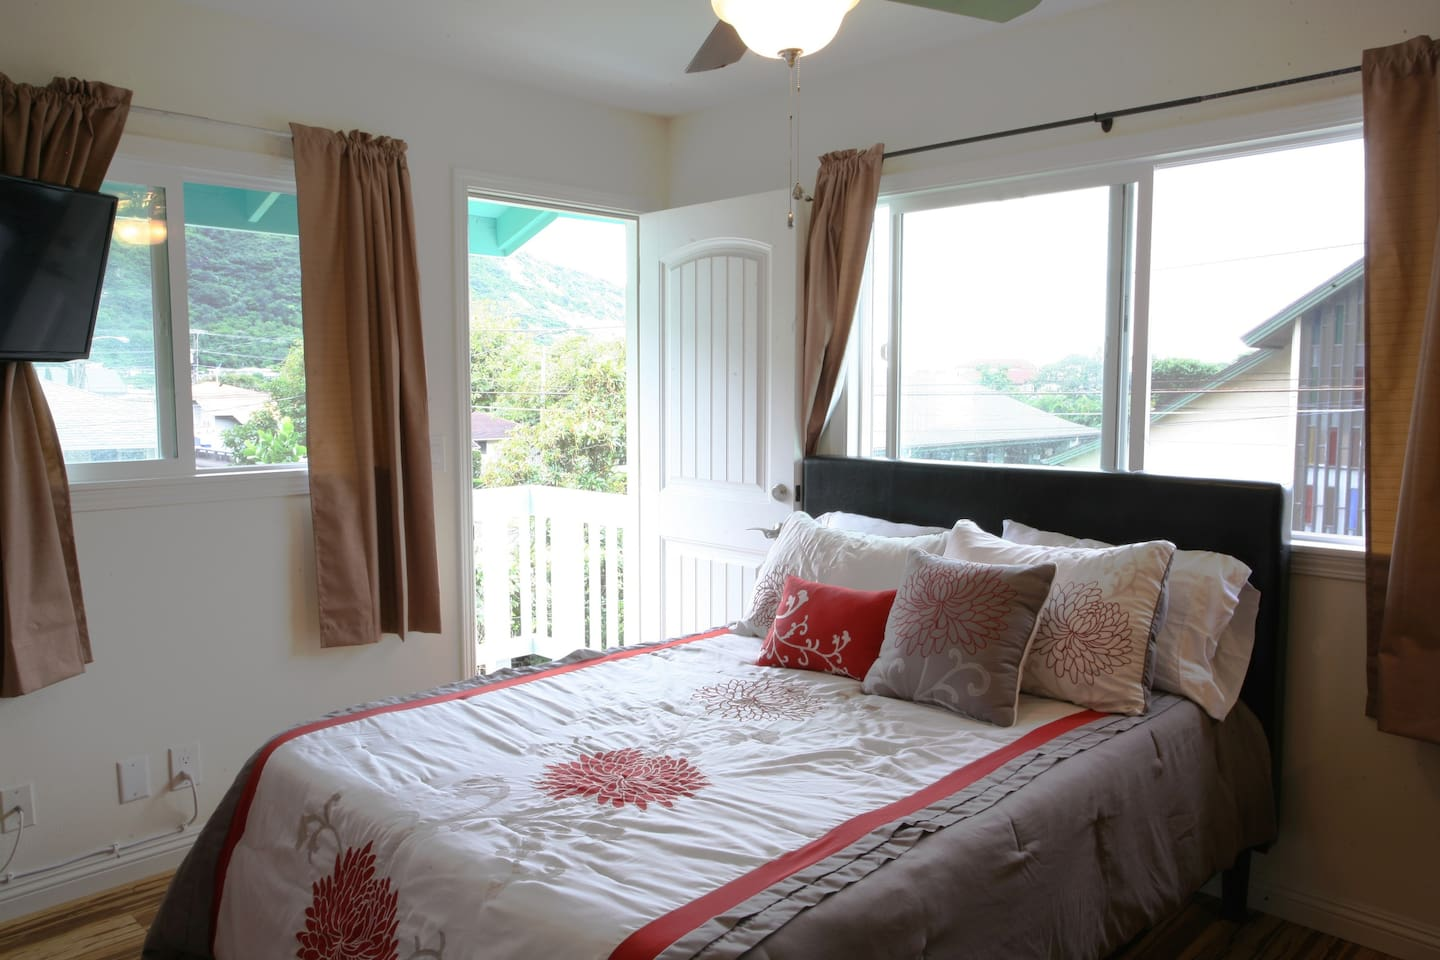 A light, airy studio in Manoa Valley with all new furnishings